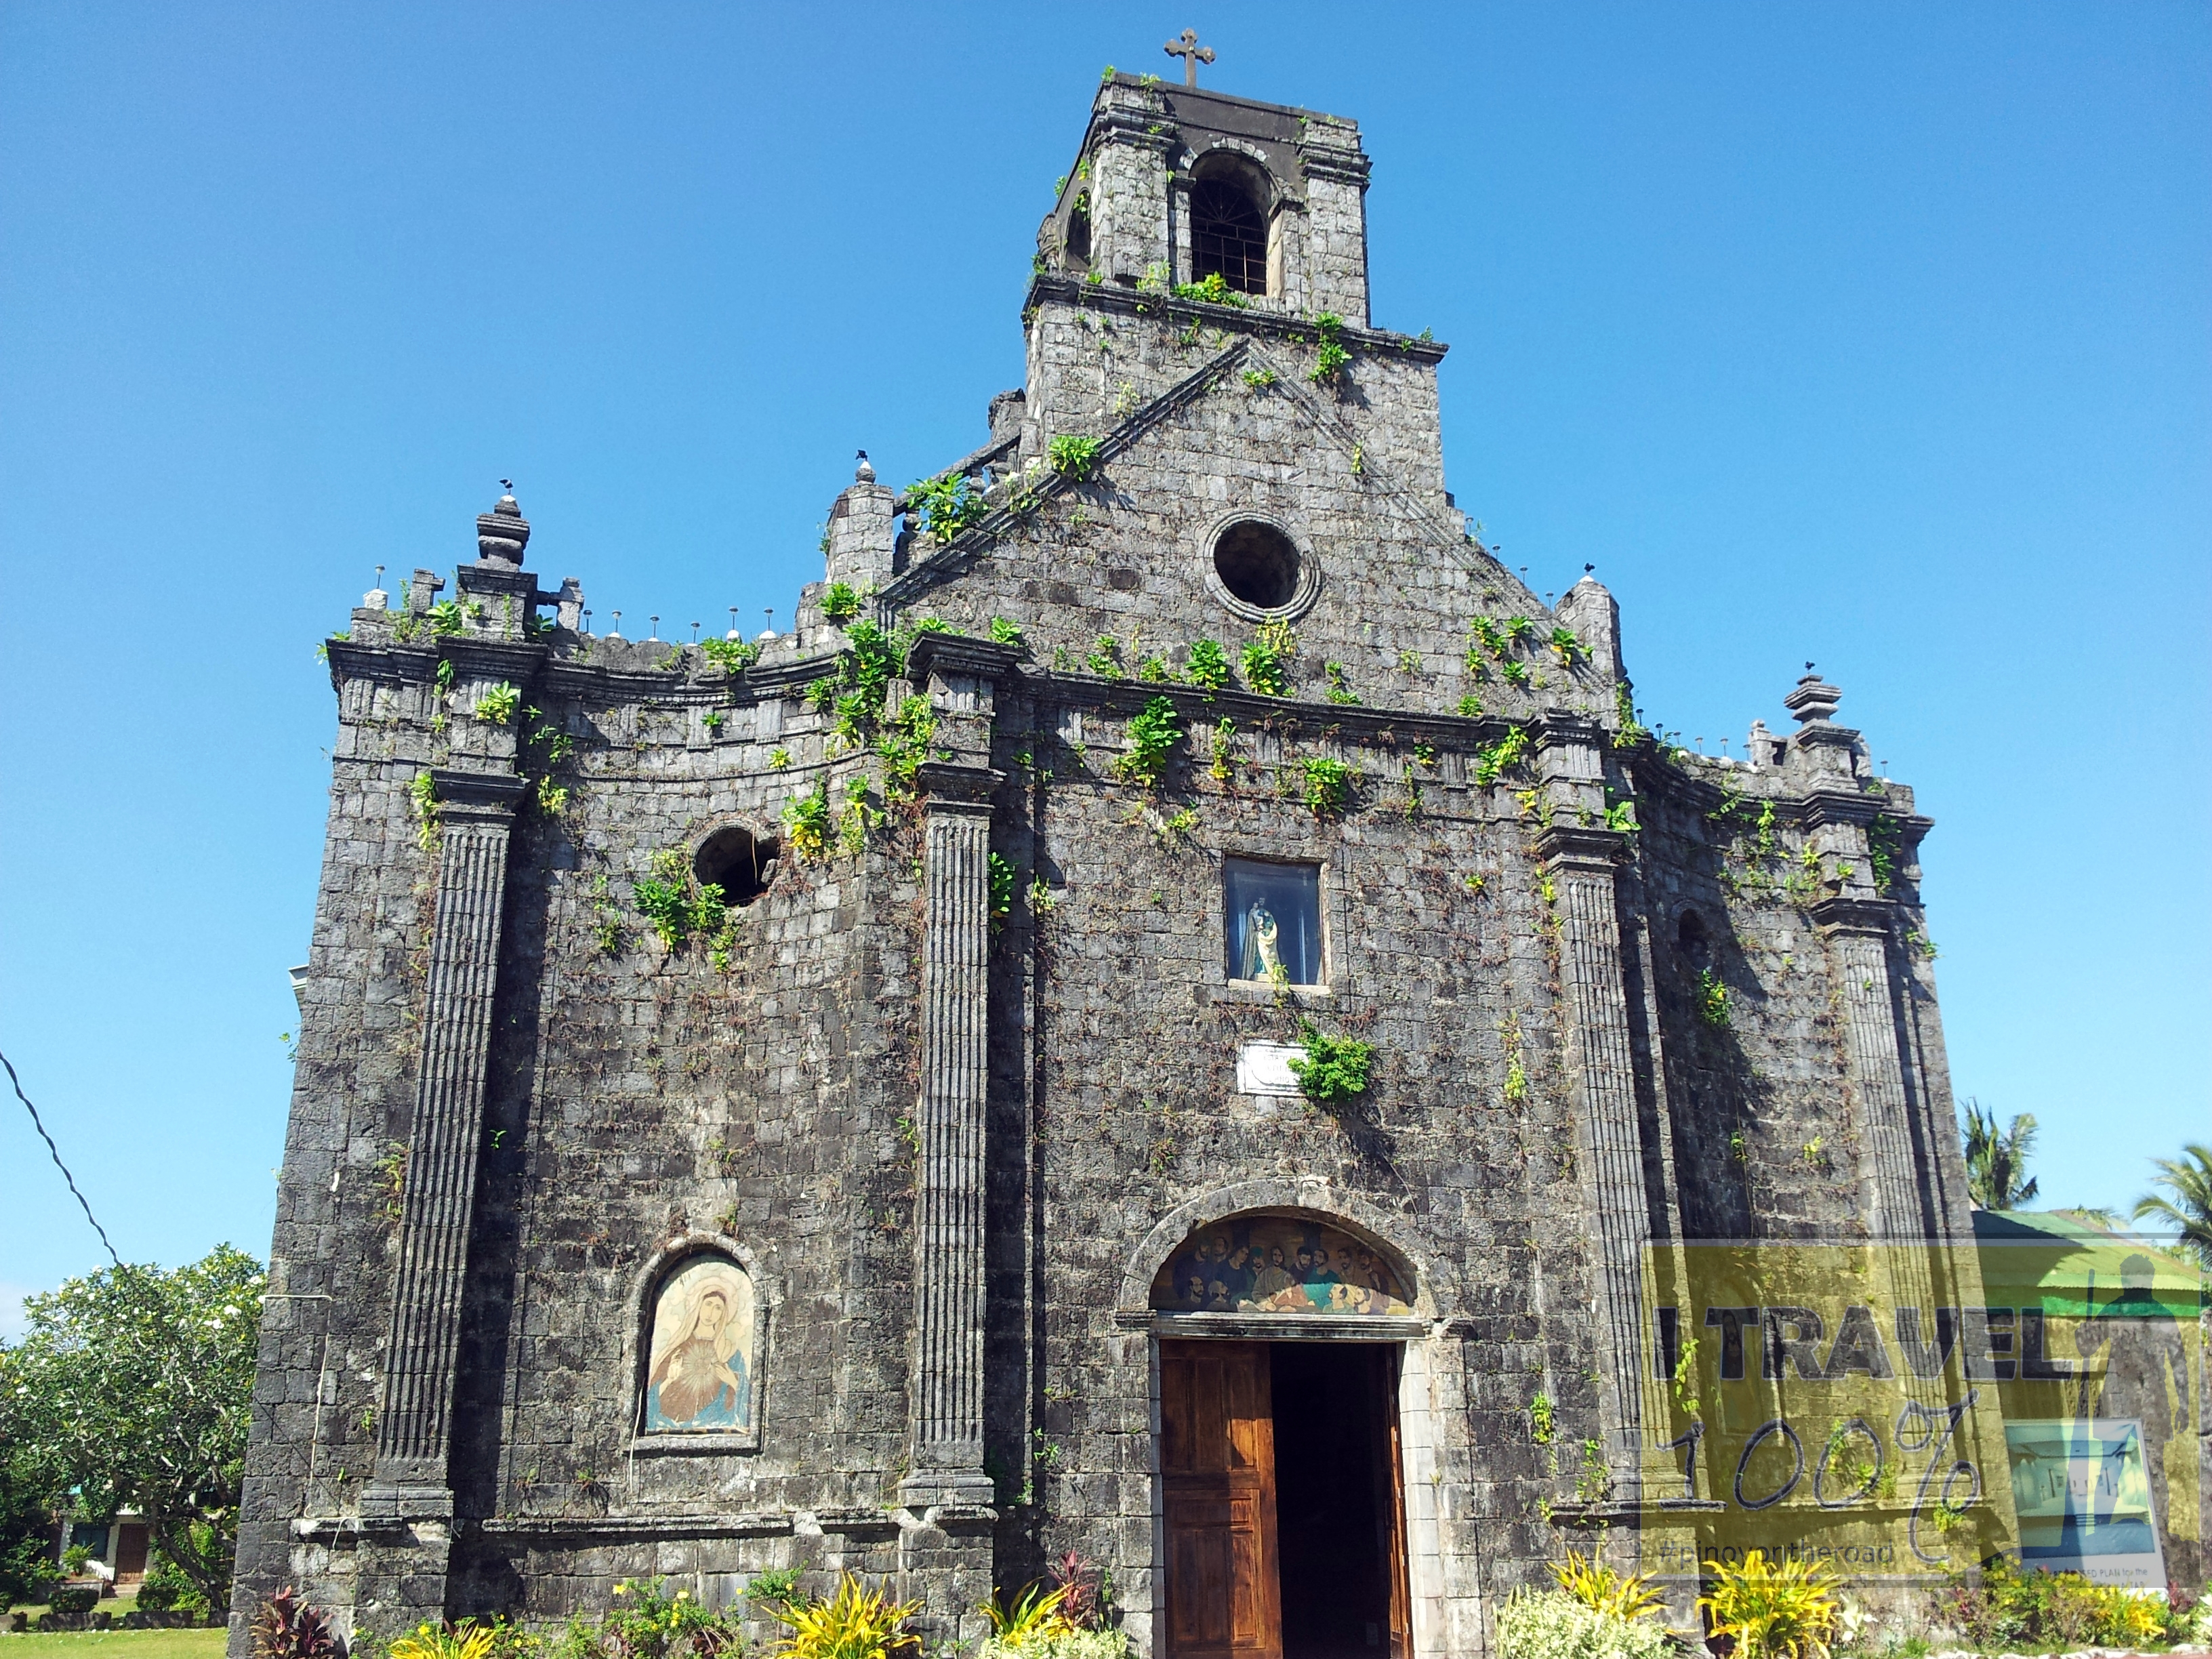 the imposing barcelona church and century old ruins  sorsogon barcelona church photo essay